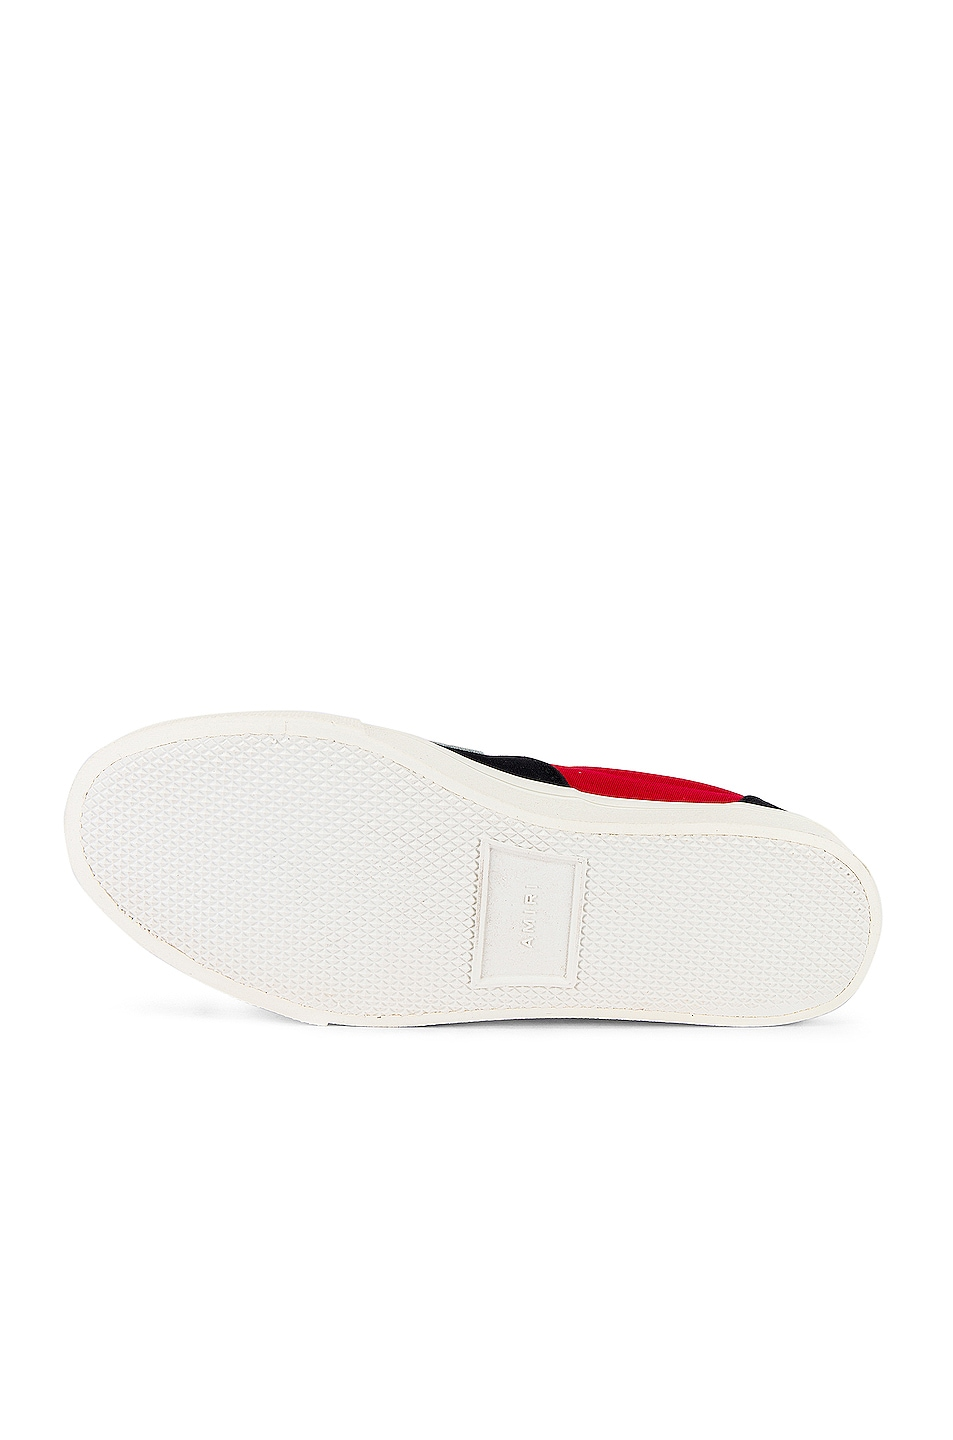 Image 6 of Amiri Skel Toe Lace Up Sneaker in Black & Red & White